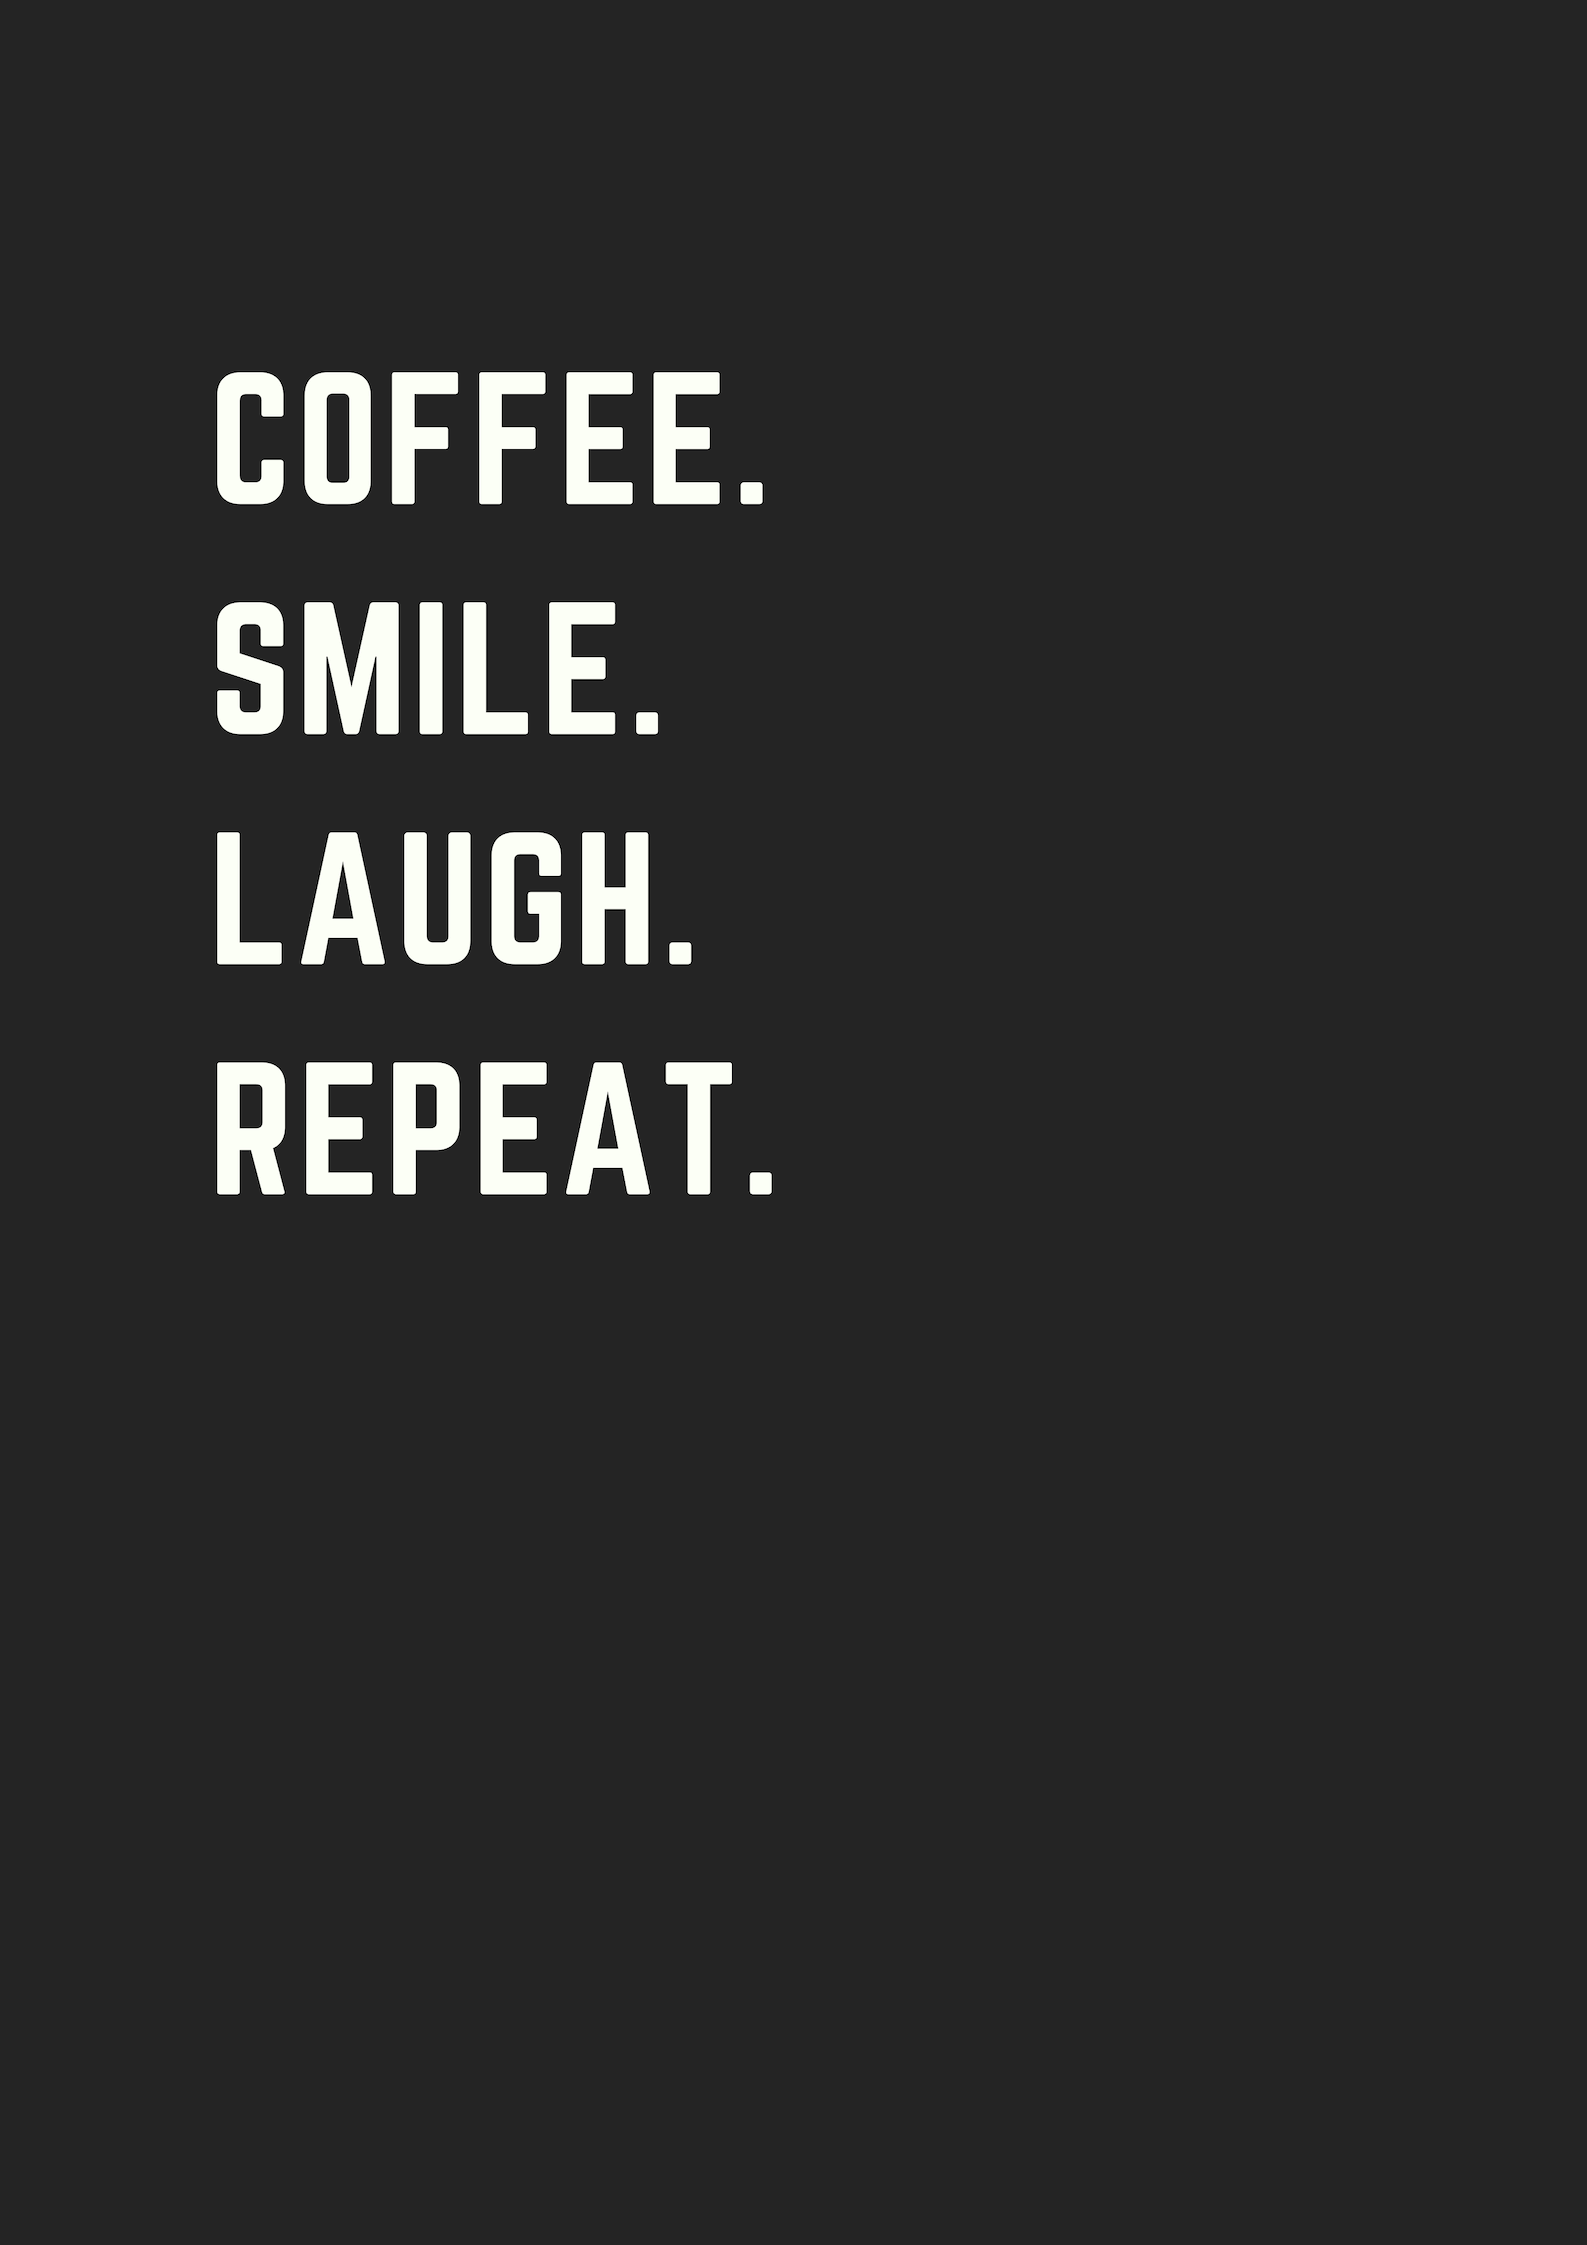 20 More Inspirational Coffee Quotes That Will Boost Your Day Coffee Quotes Funny Inspirational Coffee Quotes Coffee Quotes